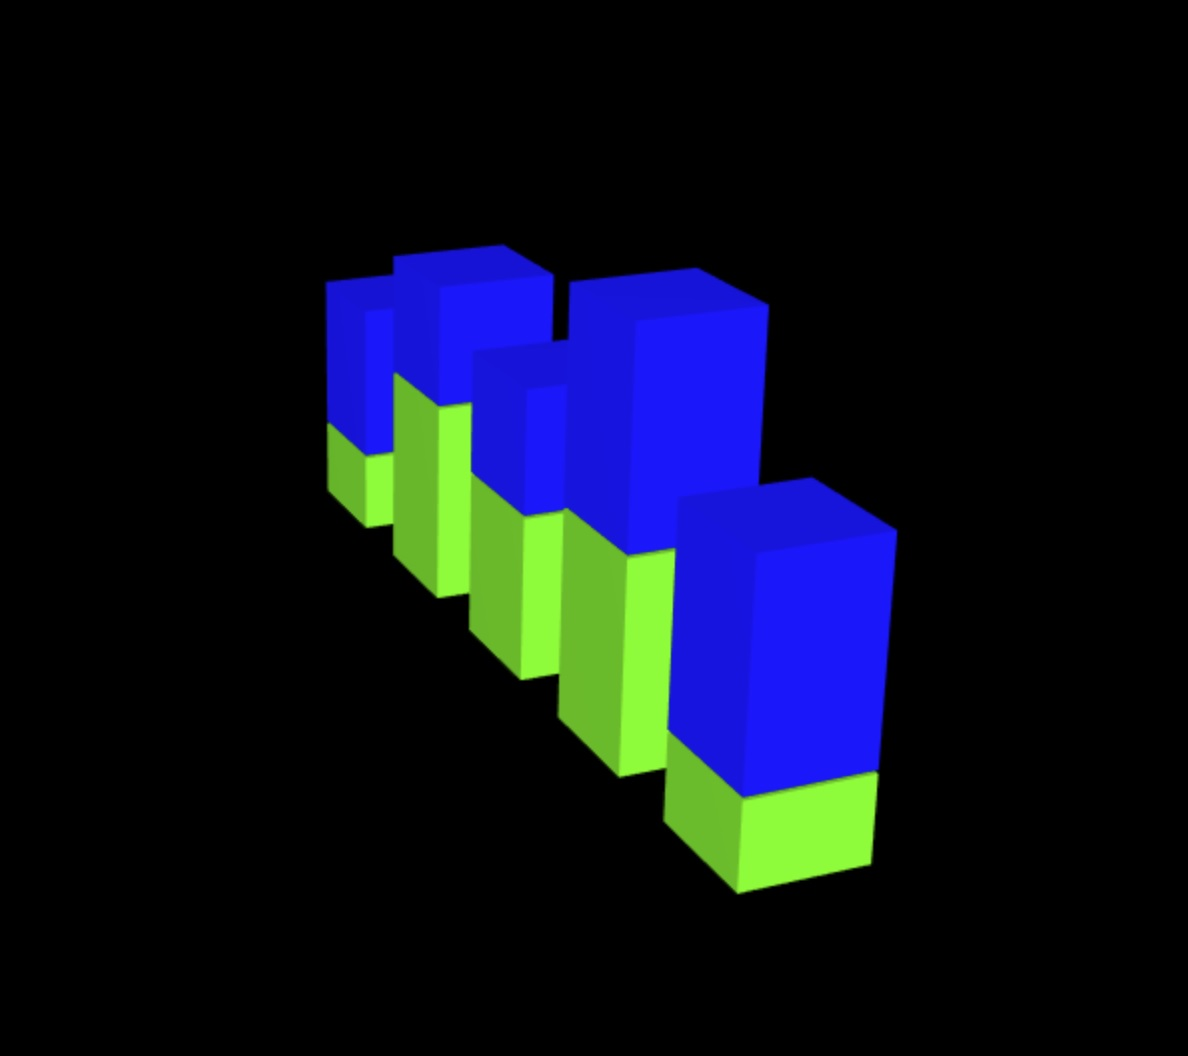 Simple cube geometry and shaders